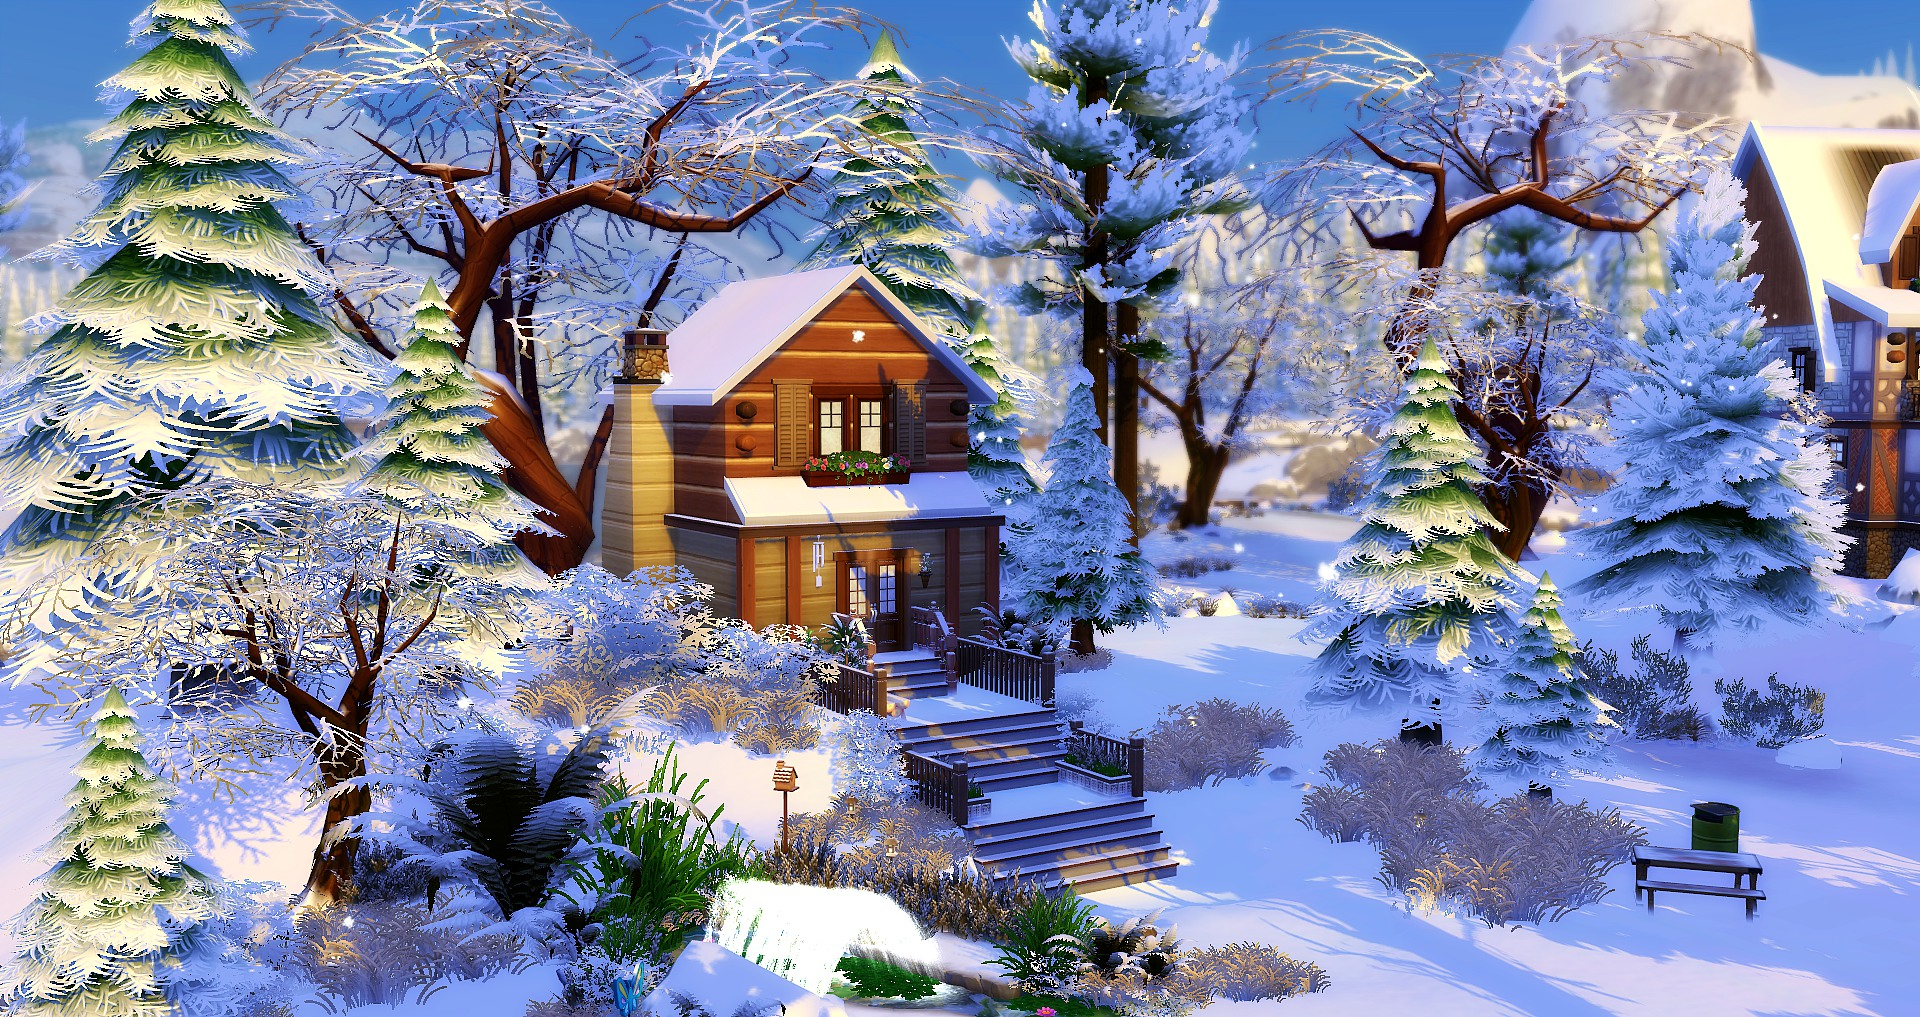 Chalet Cabane Studiosims Creation